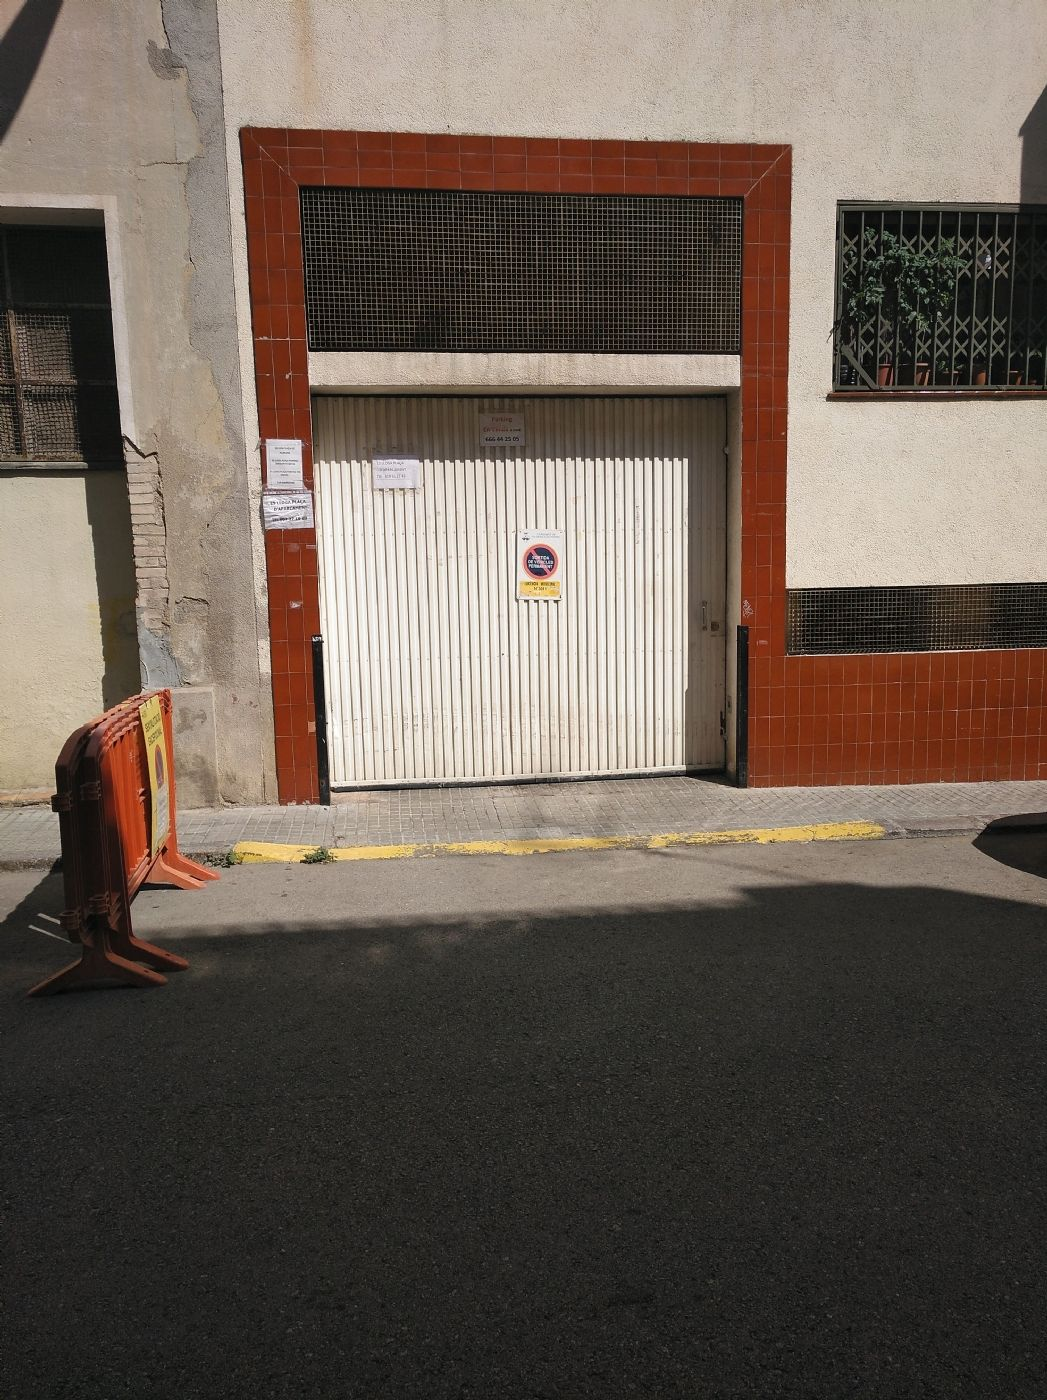 Rent Car parking in Carrer ateneu (l. Plaza párquing poble nou c ateneu